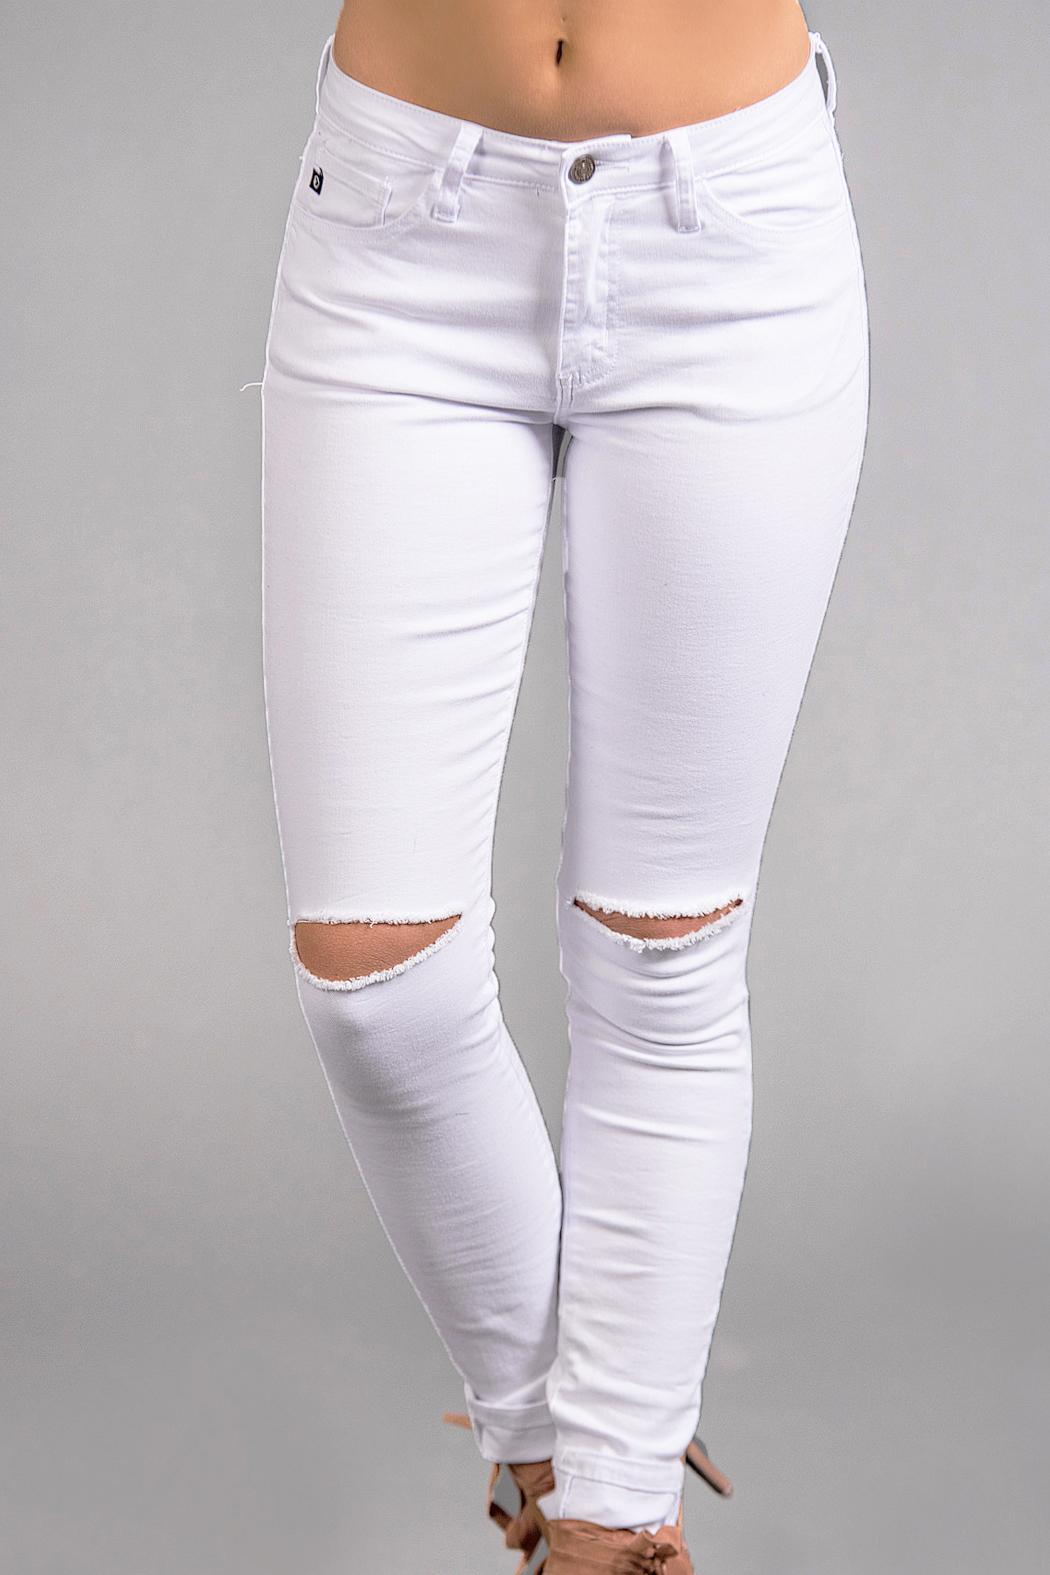 KanCan White Distressed Jeans from North Carolina by Truly Yours ...